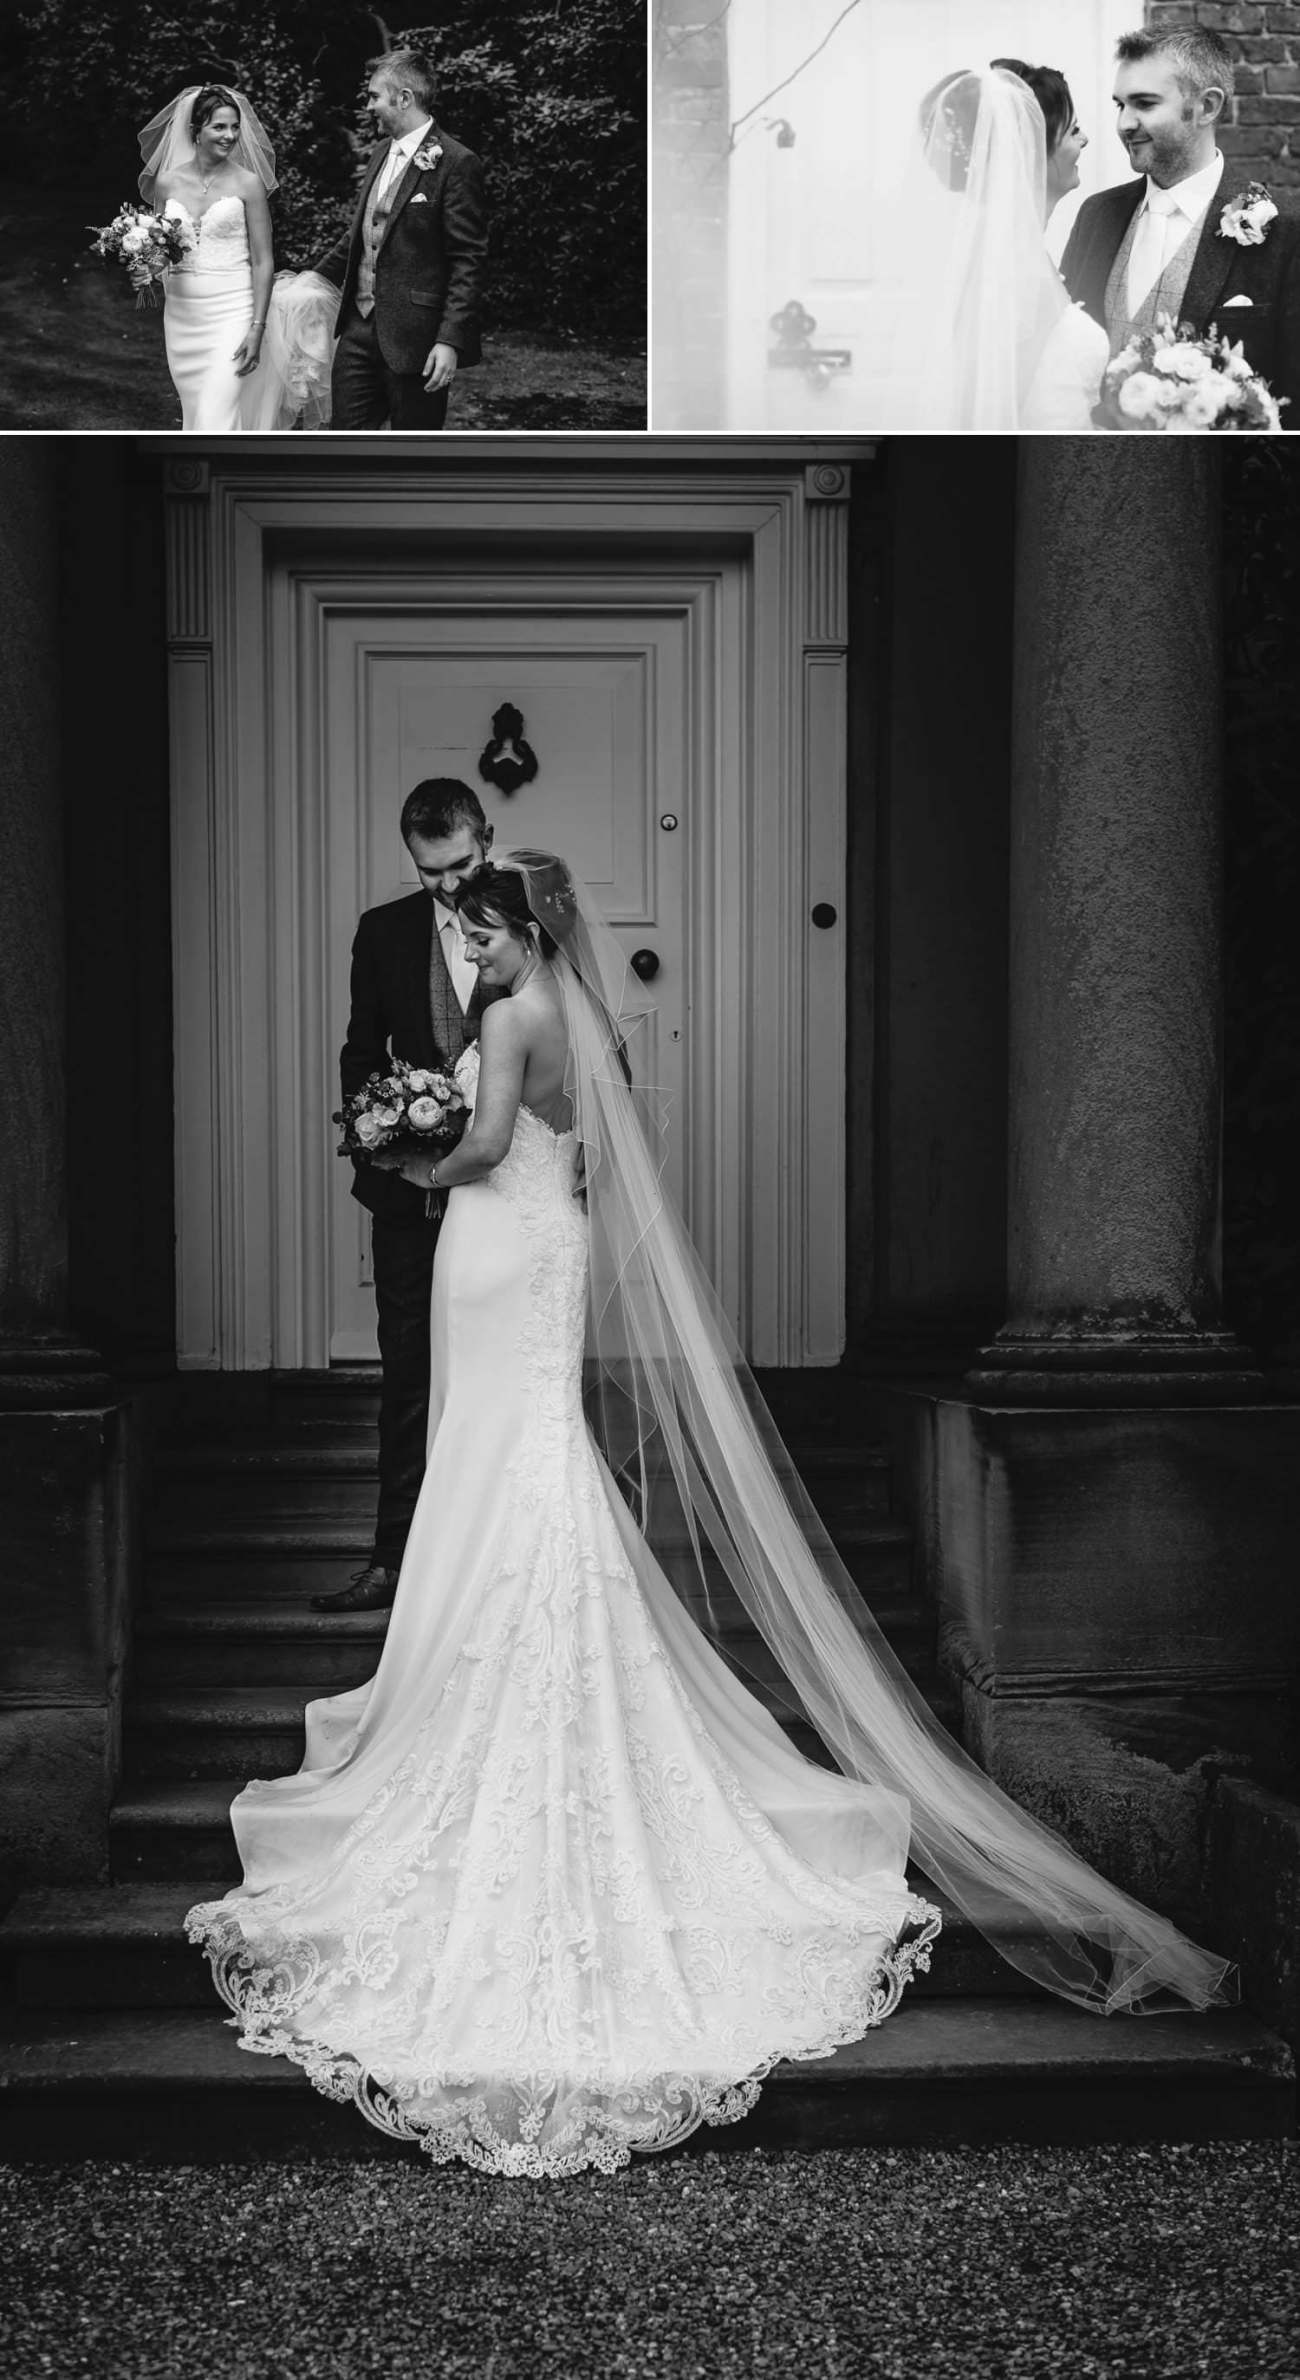 Black and white wedding photography at Iscoyd Park, portraits